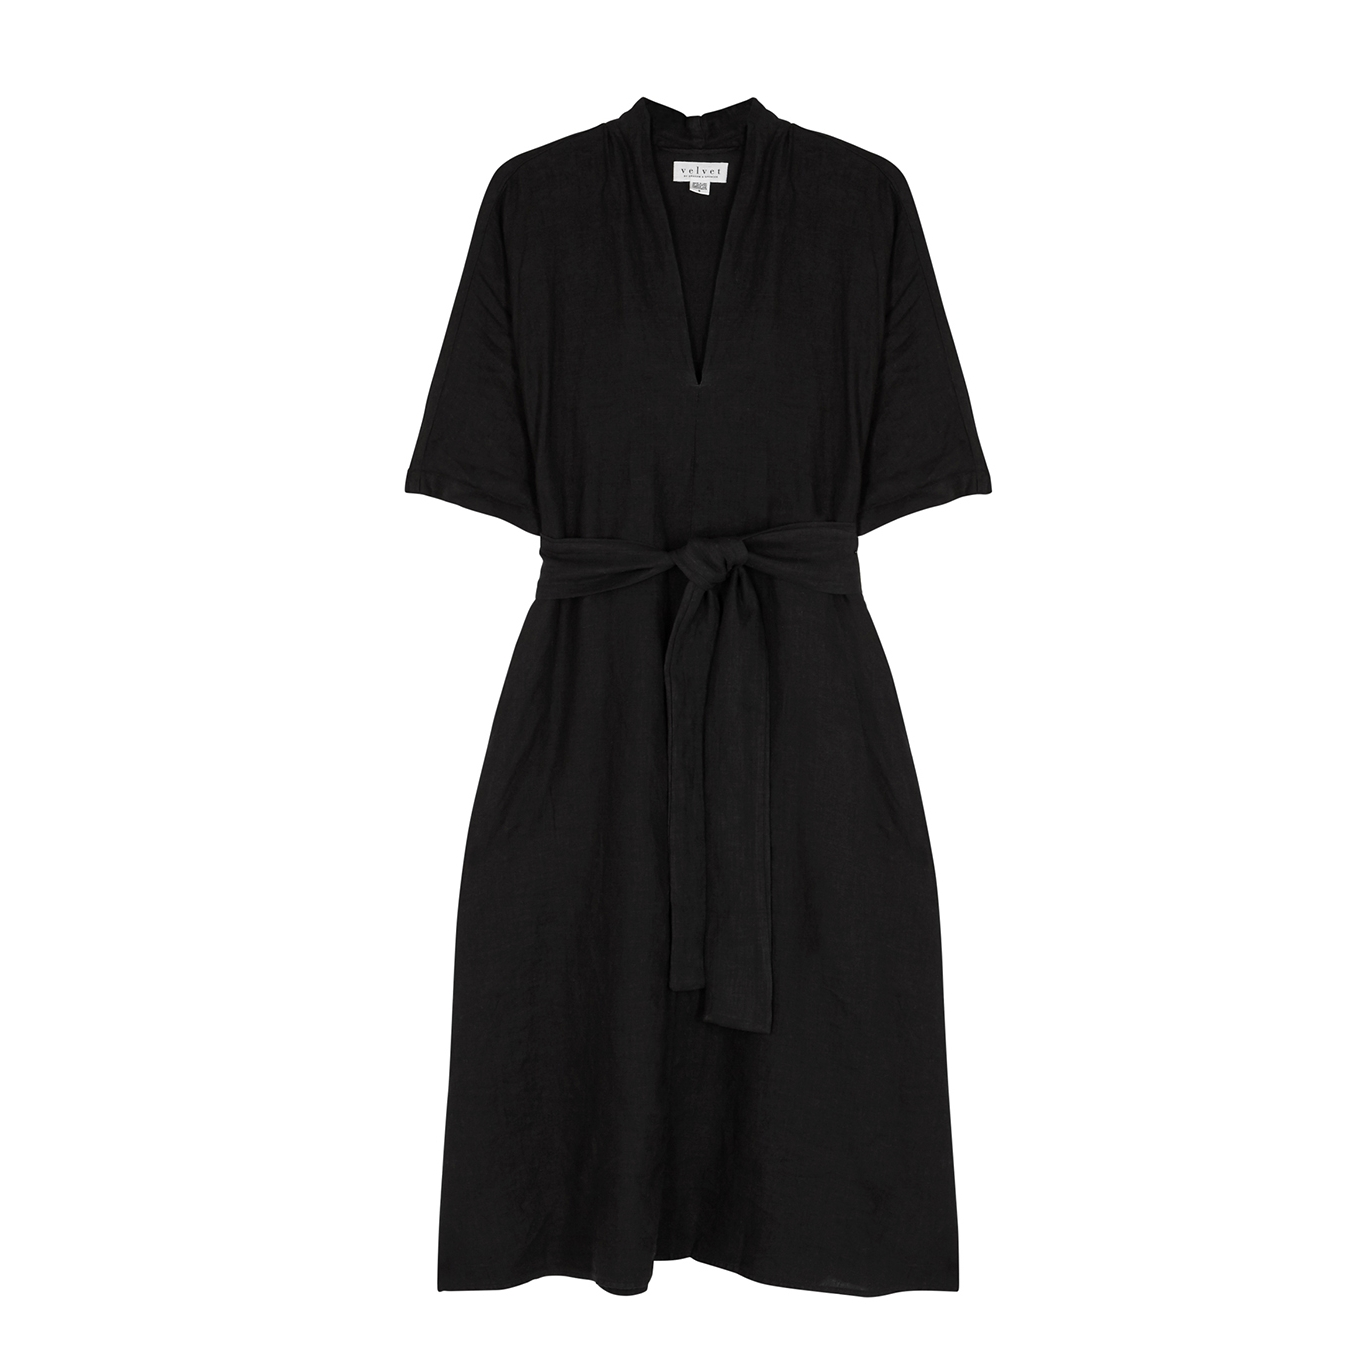 6baf138afbe Velvet by Graham   Spencer Winley black linen dress - Harvey Nichols